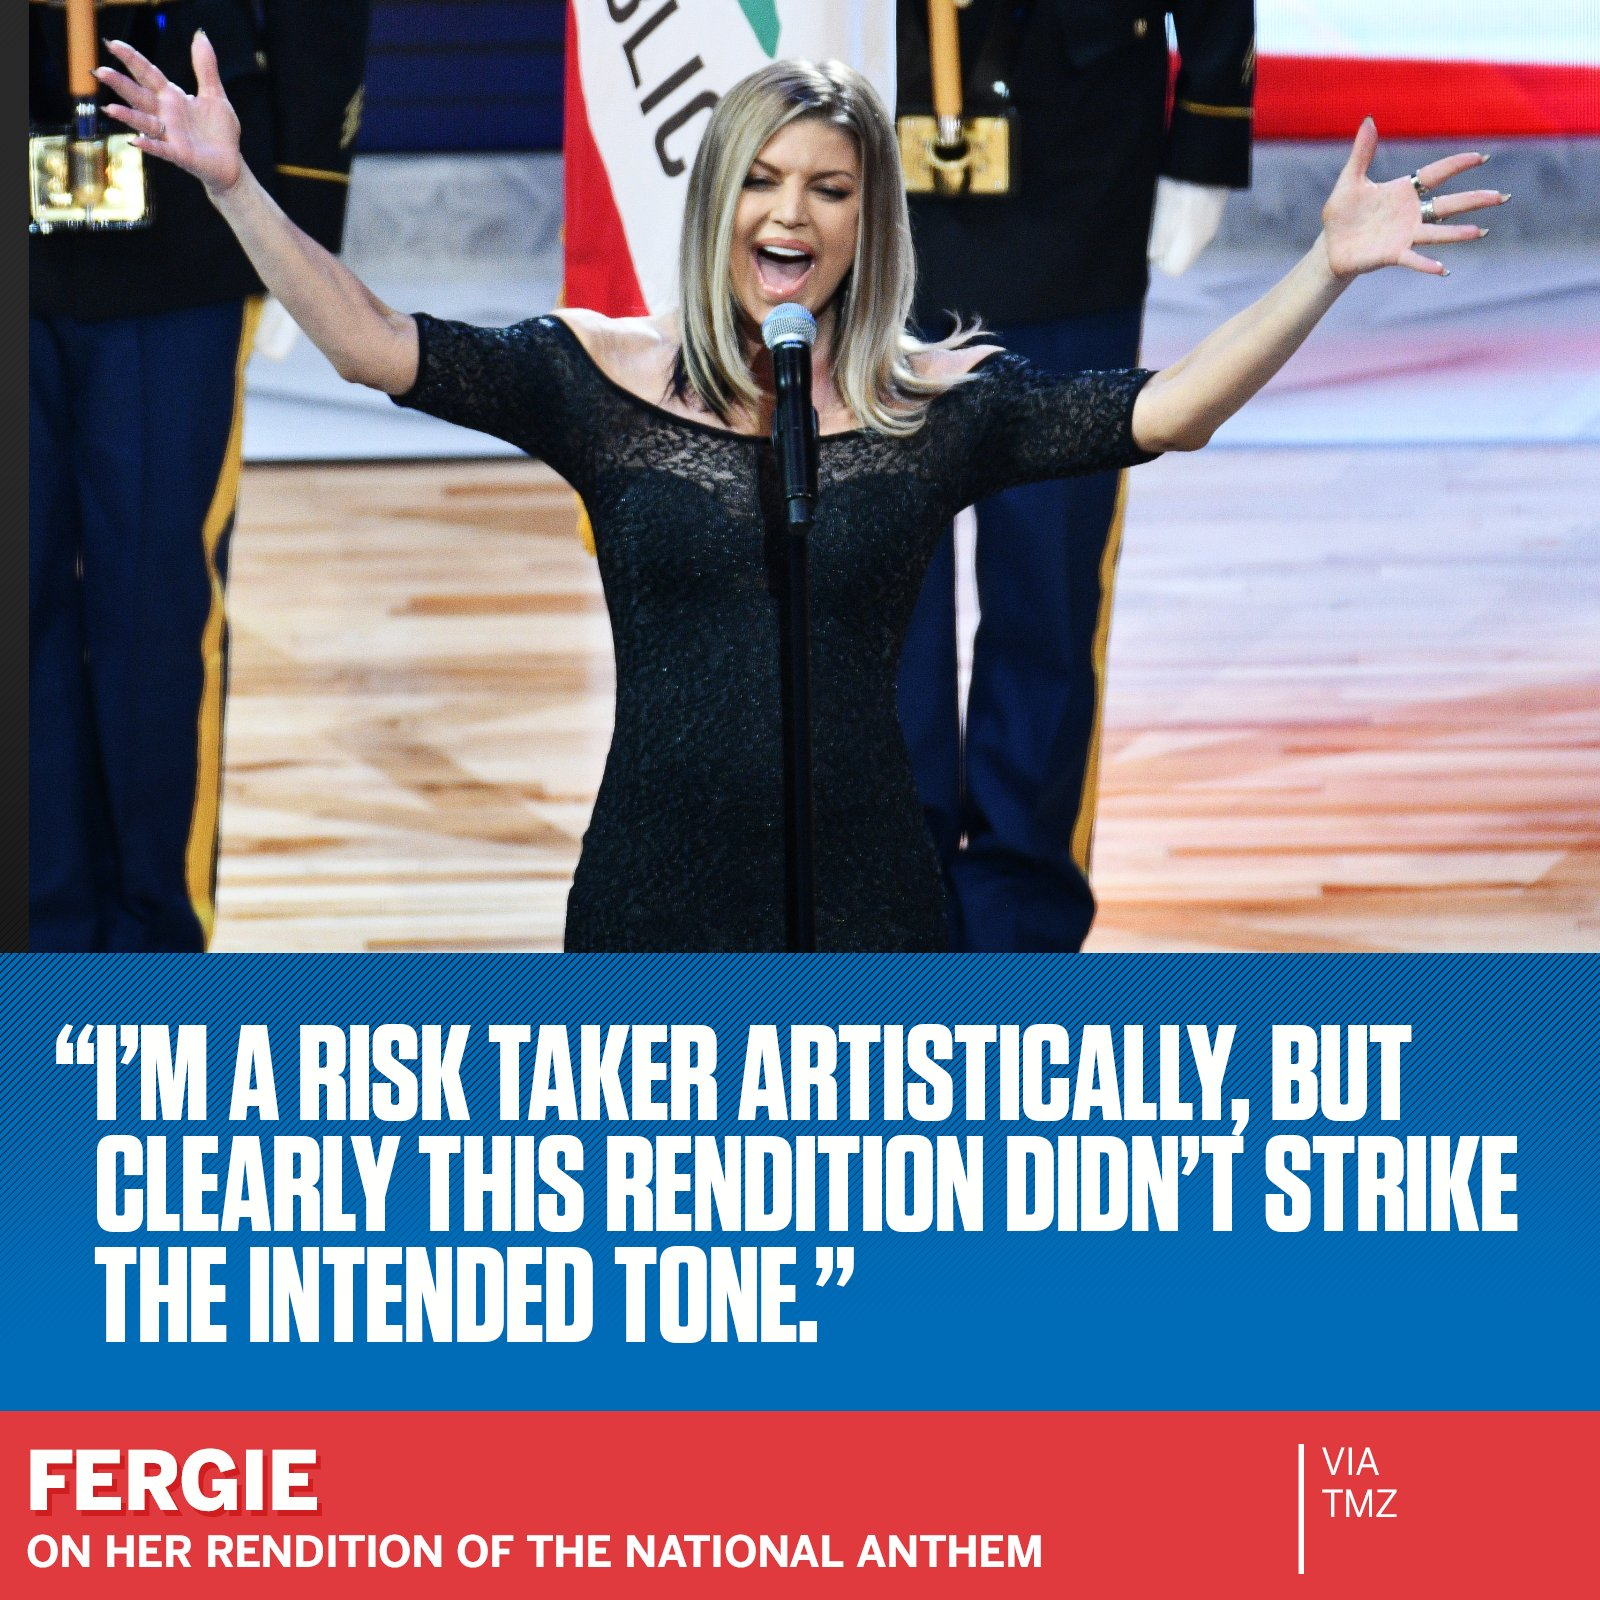 Fergie responded to the critics of her national anthem performance at the NBA All-Star Game. https://t.co/Rp4CXcSGC2